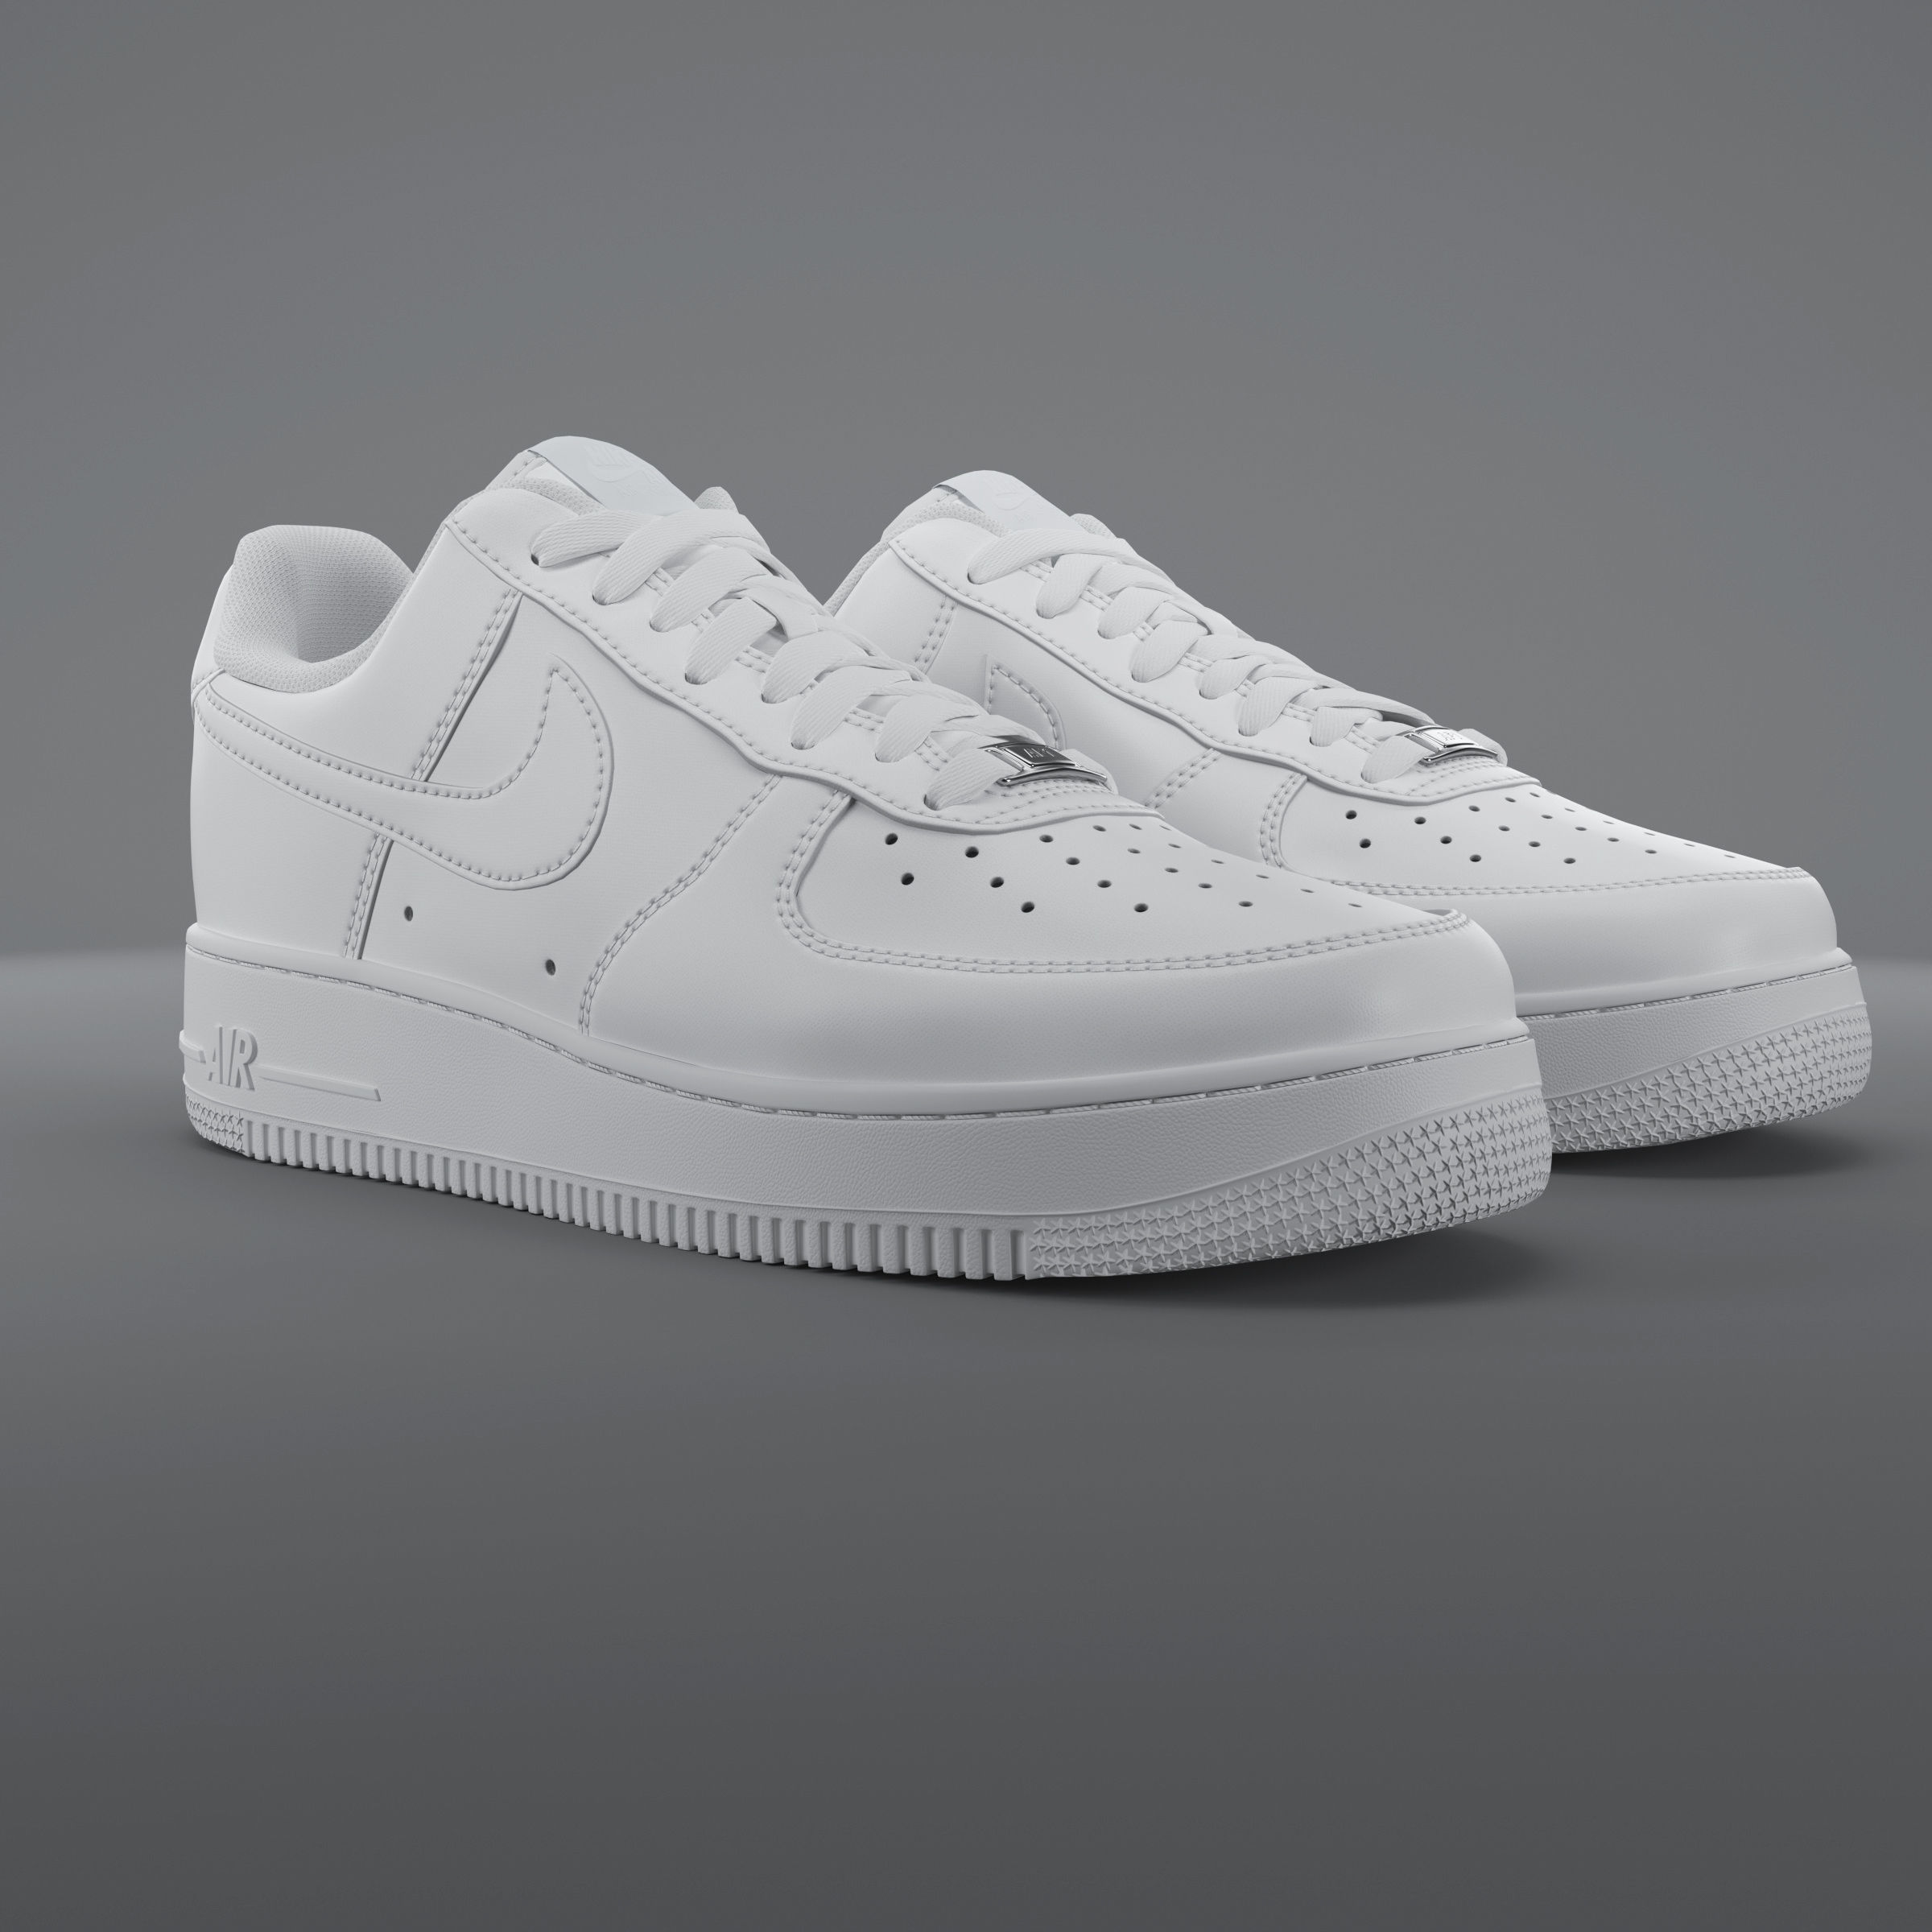 Air Force 1 Low Nike PBR